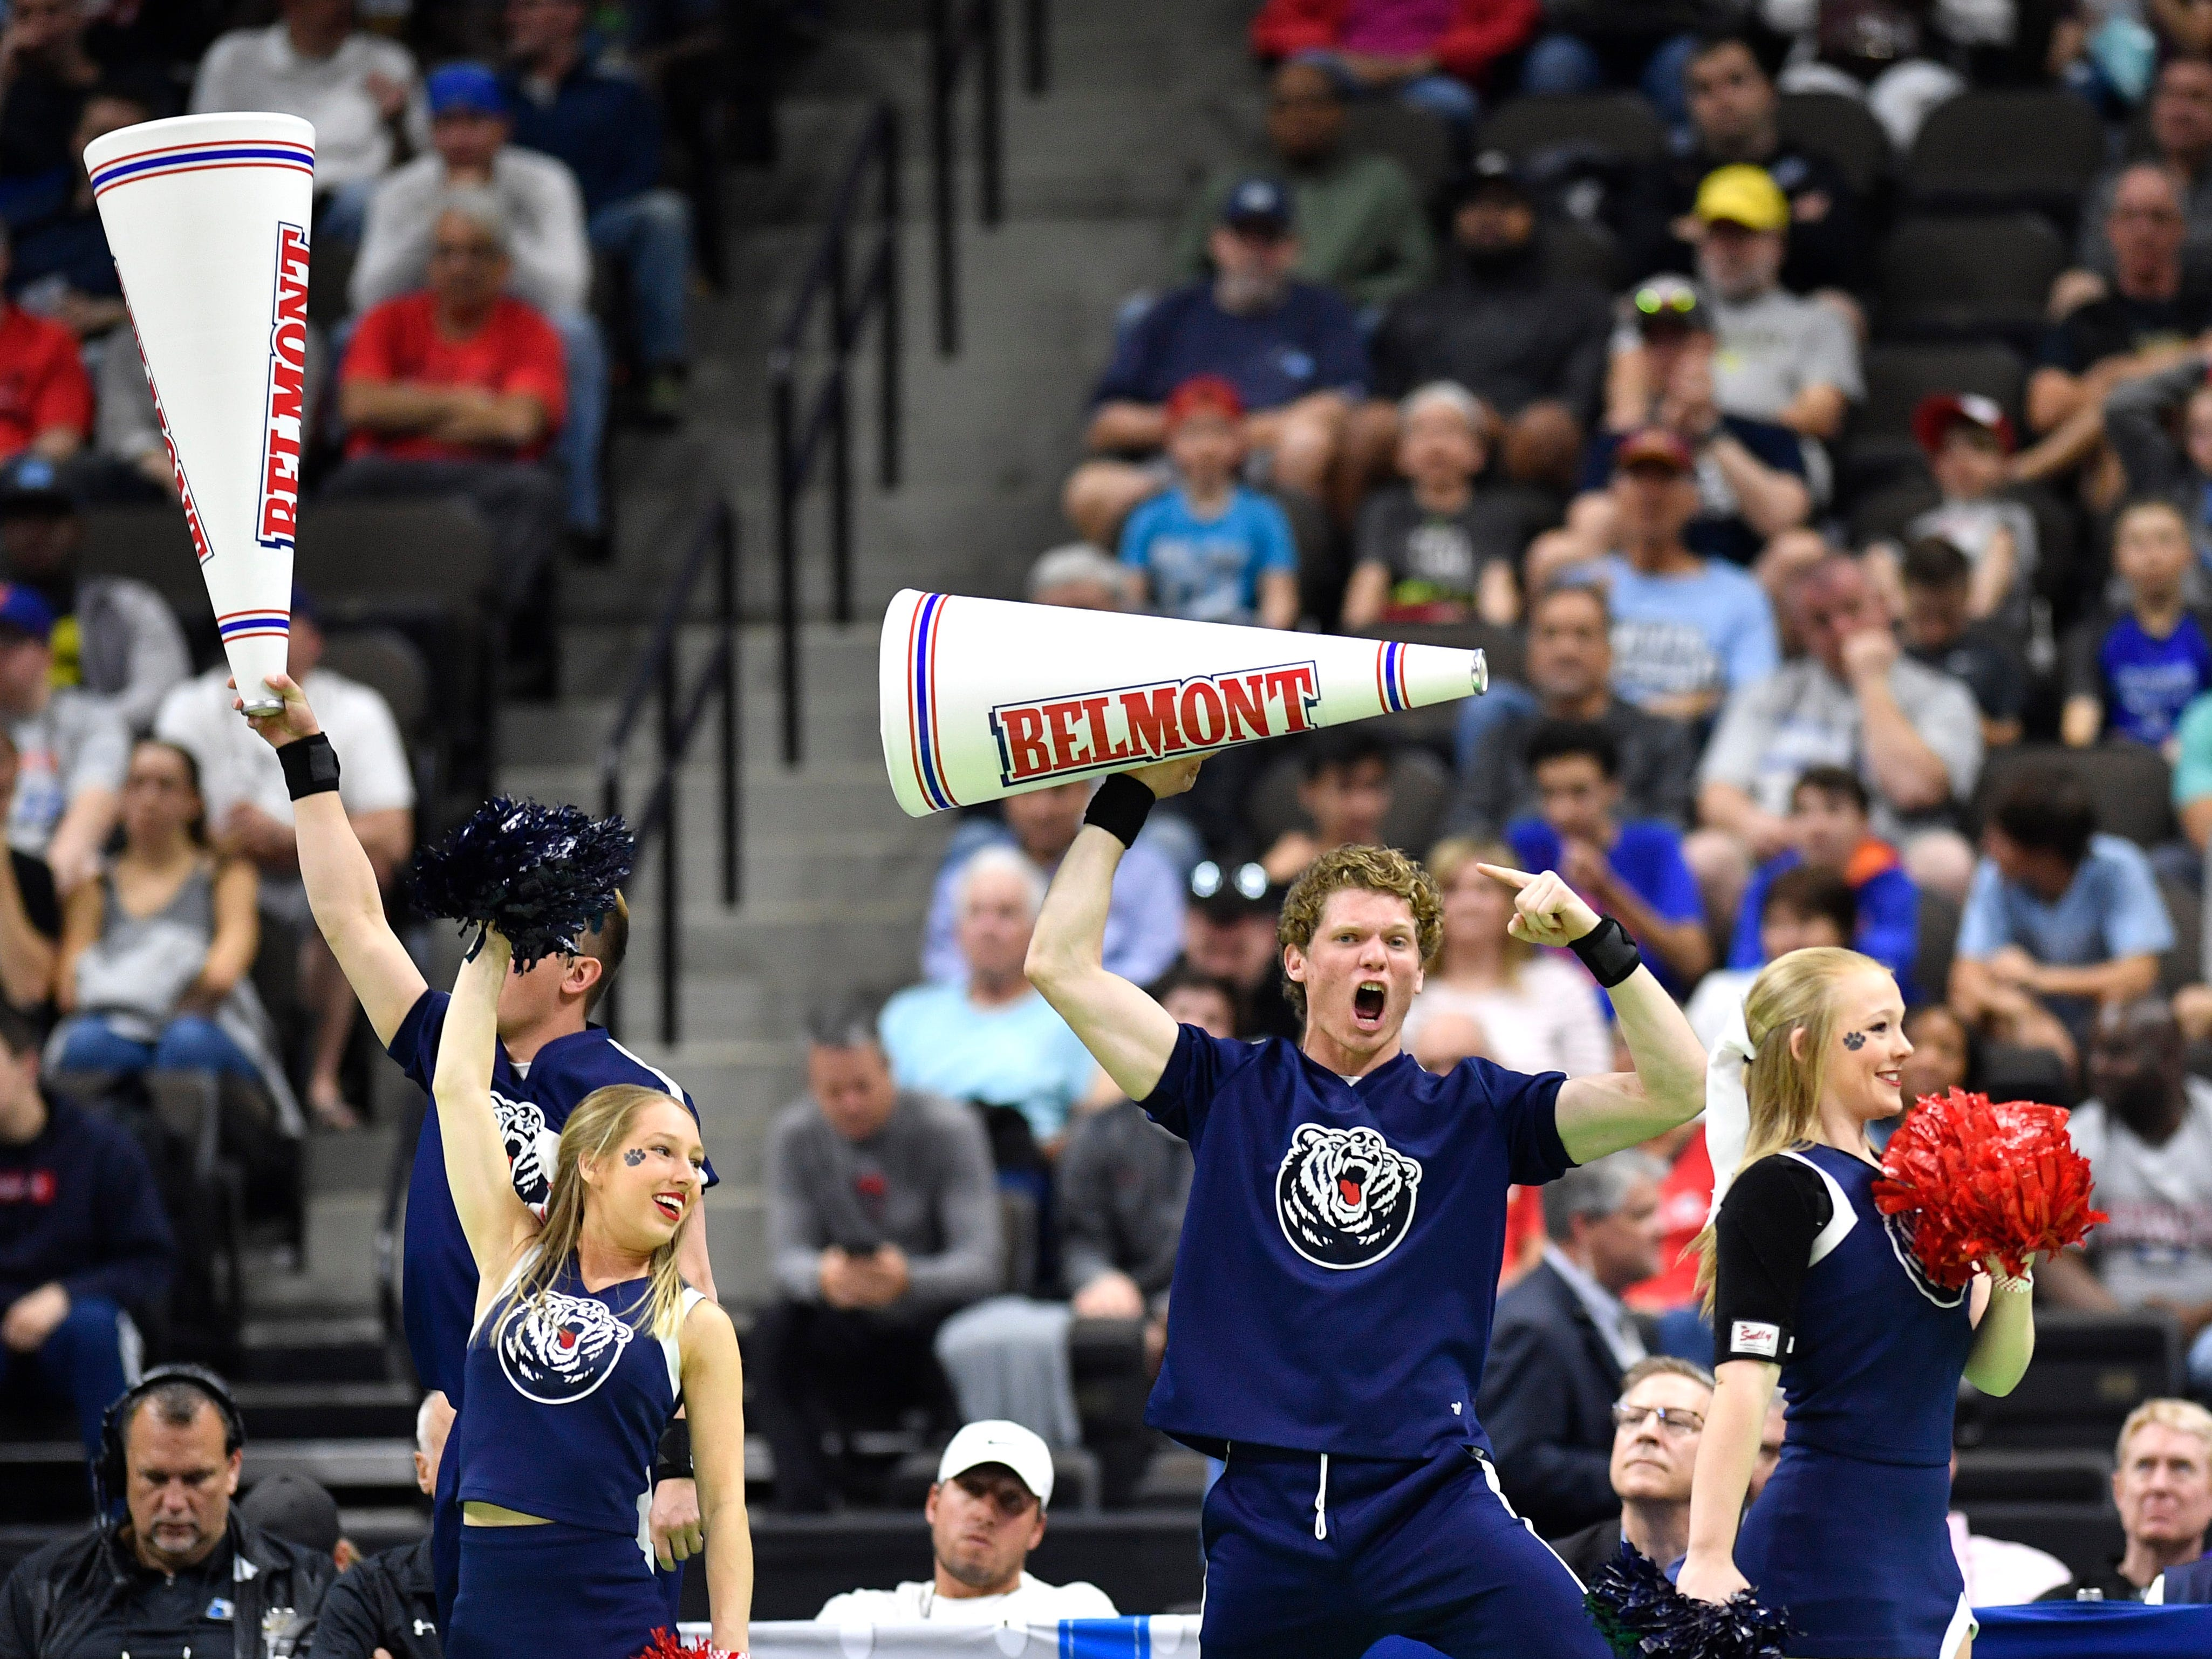 Belmont cheerleaders lead the fans during the first half of the first-round NCAA college basketball tournament game at VyStar Veterans Memorial Arena in Jacksonville, Fla., Thursday, March 21, 2019.